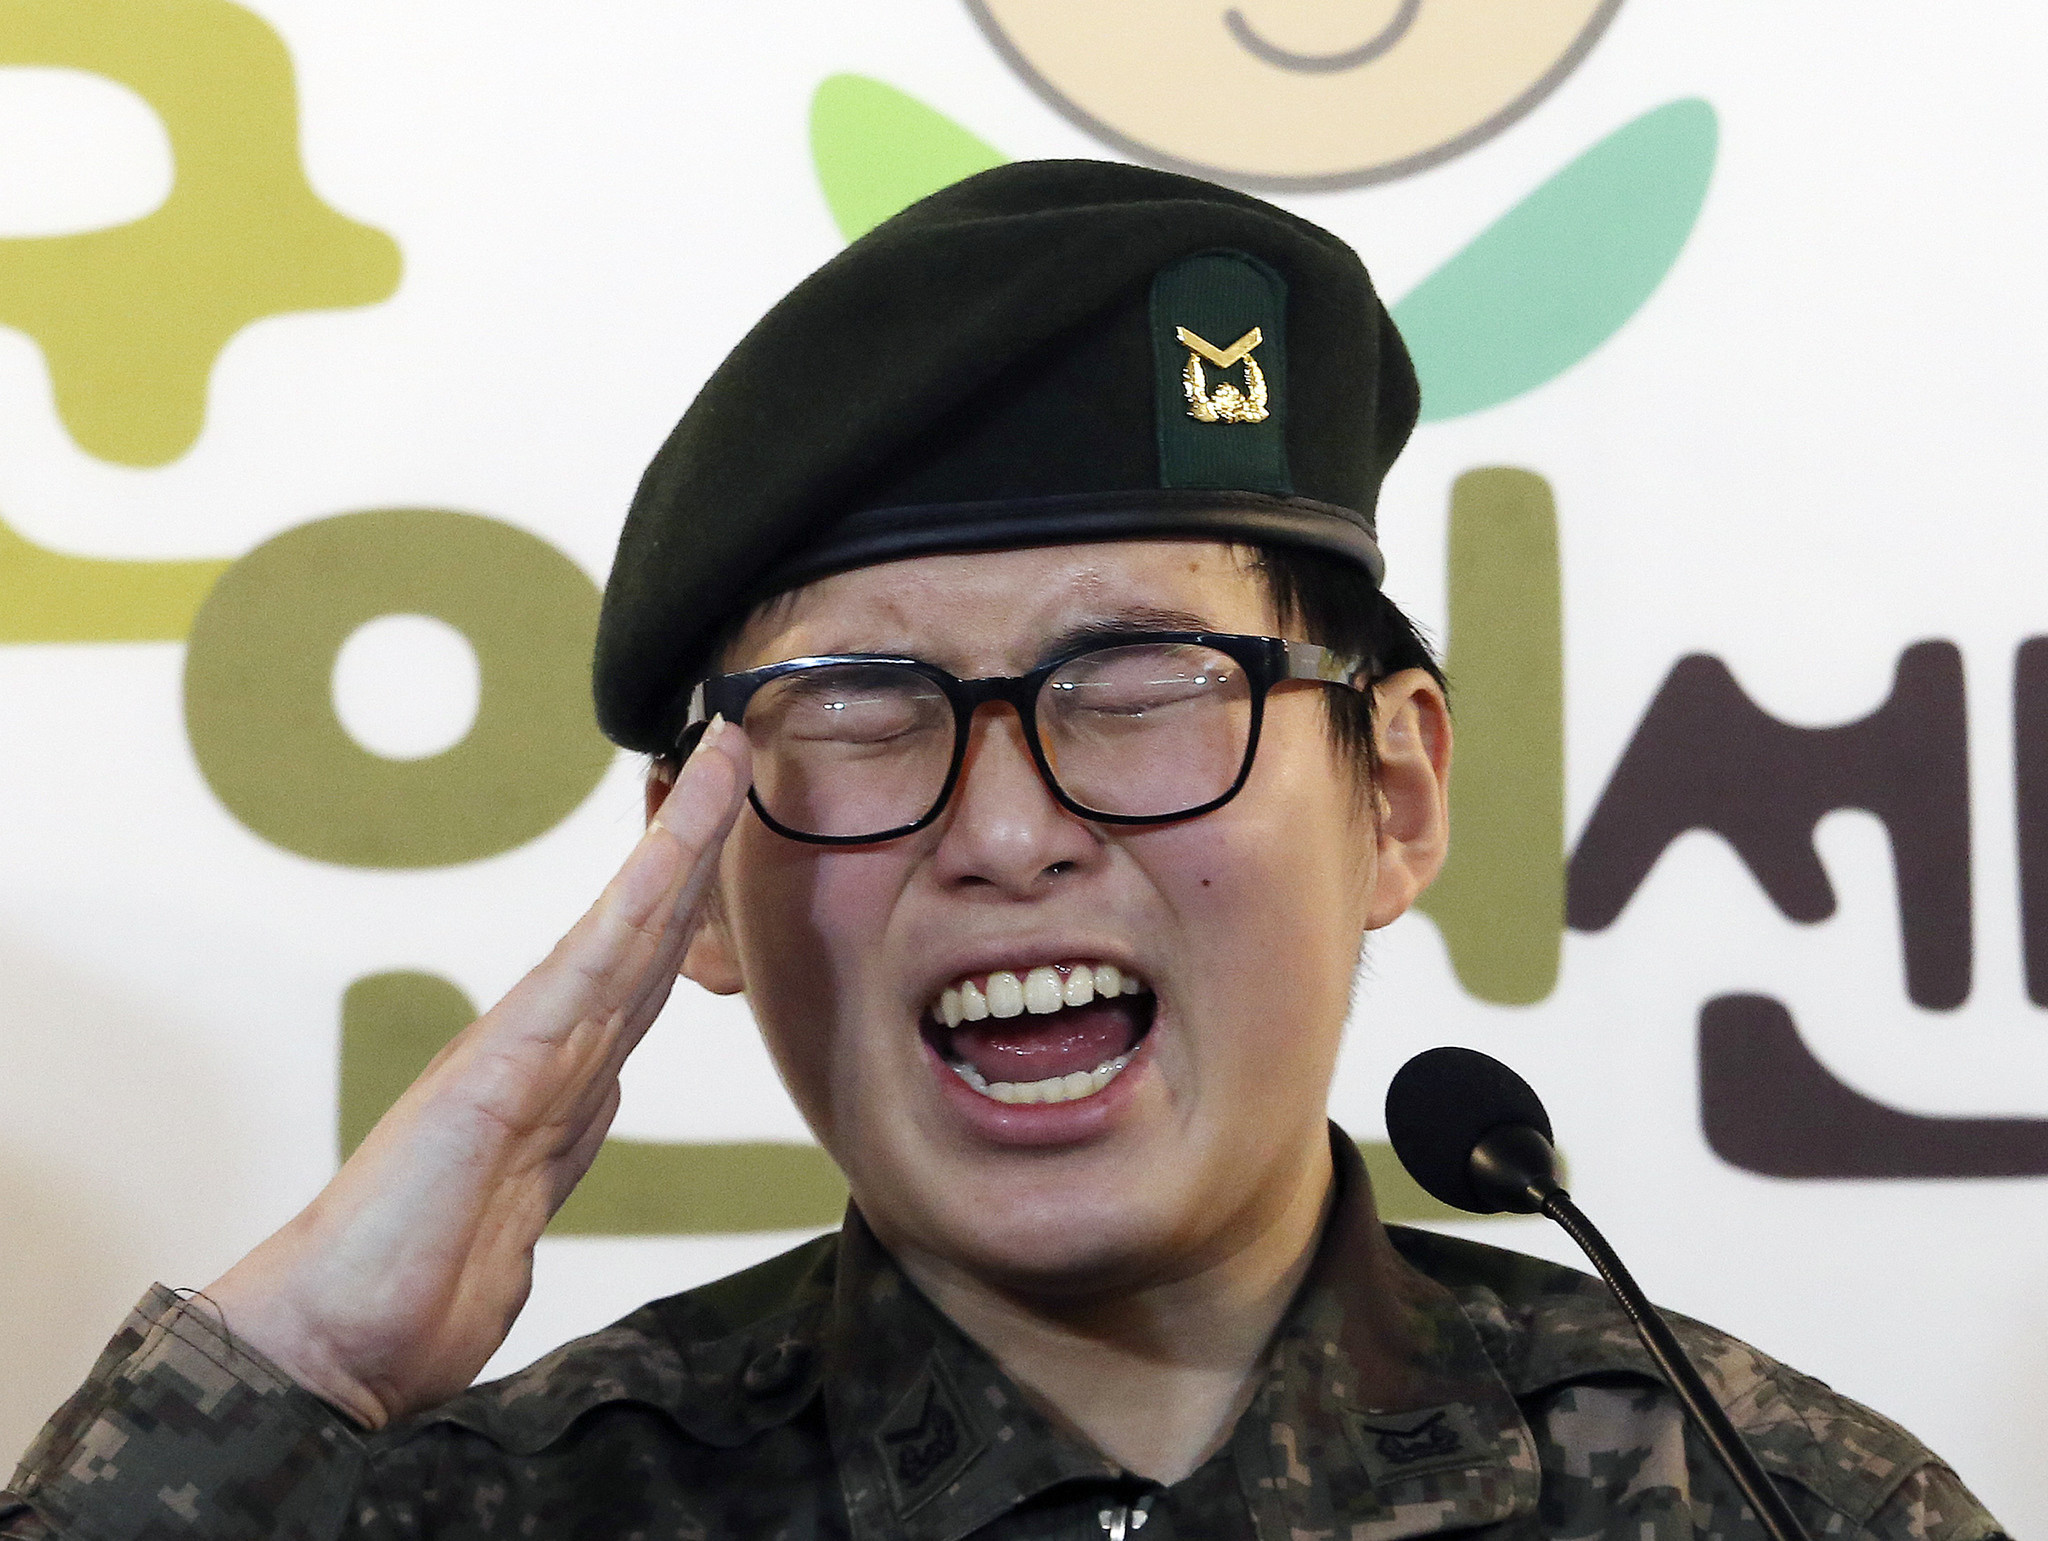 South Korean military discharges its 1st transgender soldier